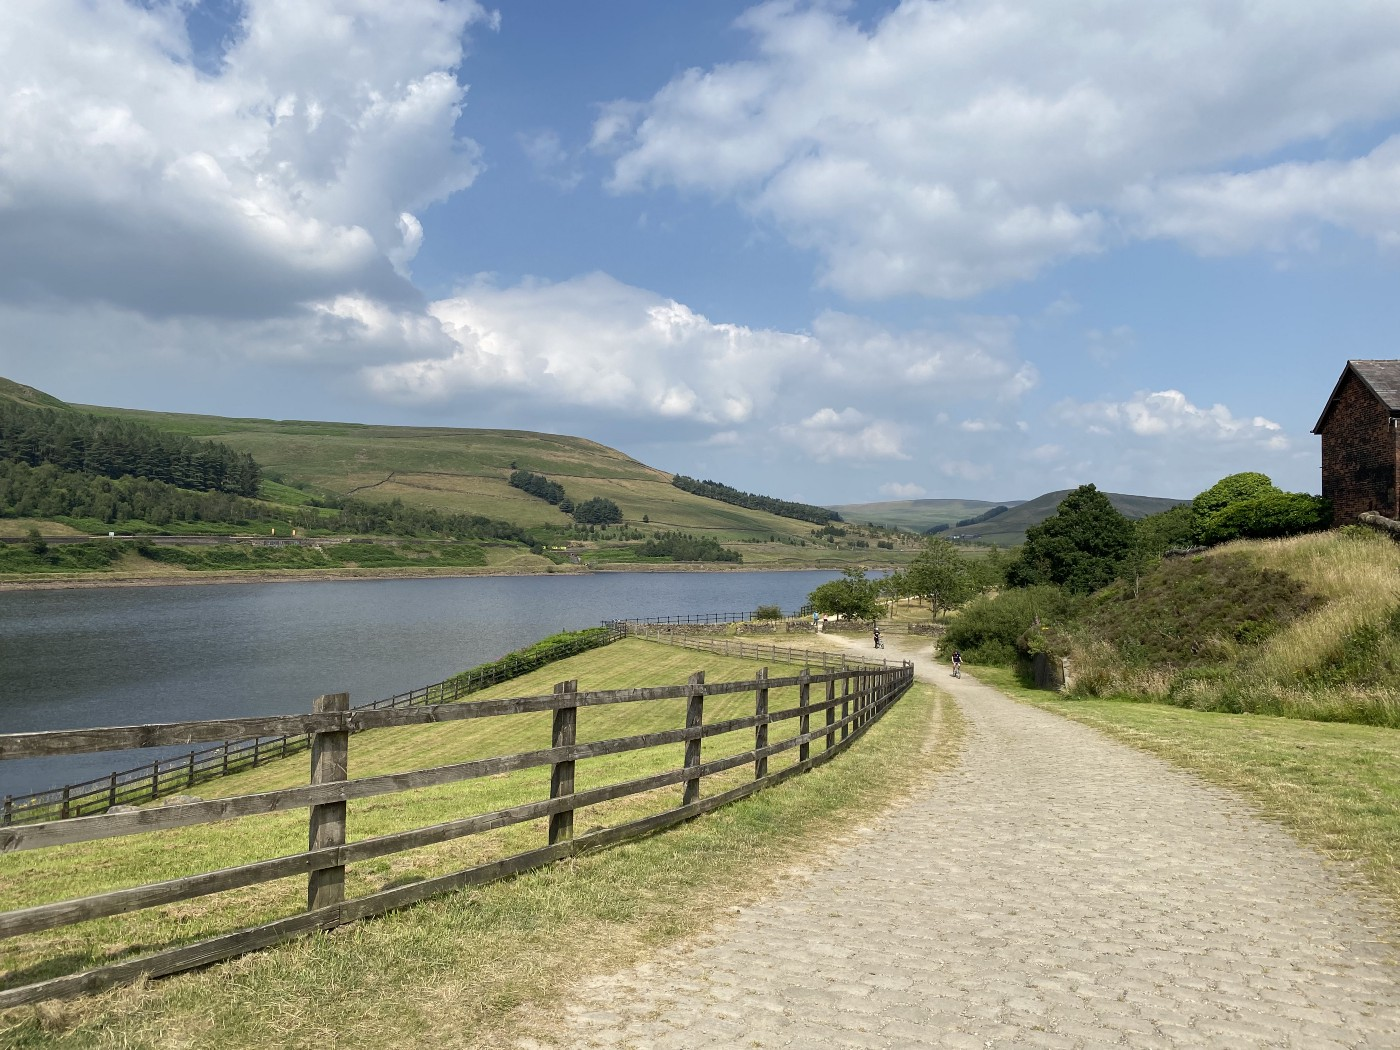 Wide cobbled bridleway above a reservoir on the Trans-Pennine Trail